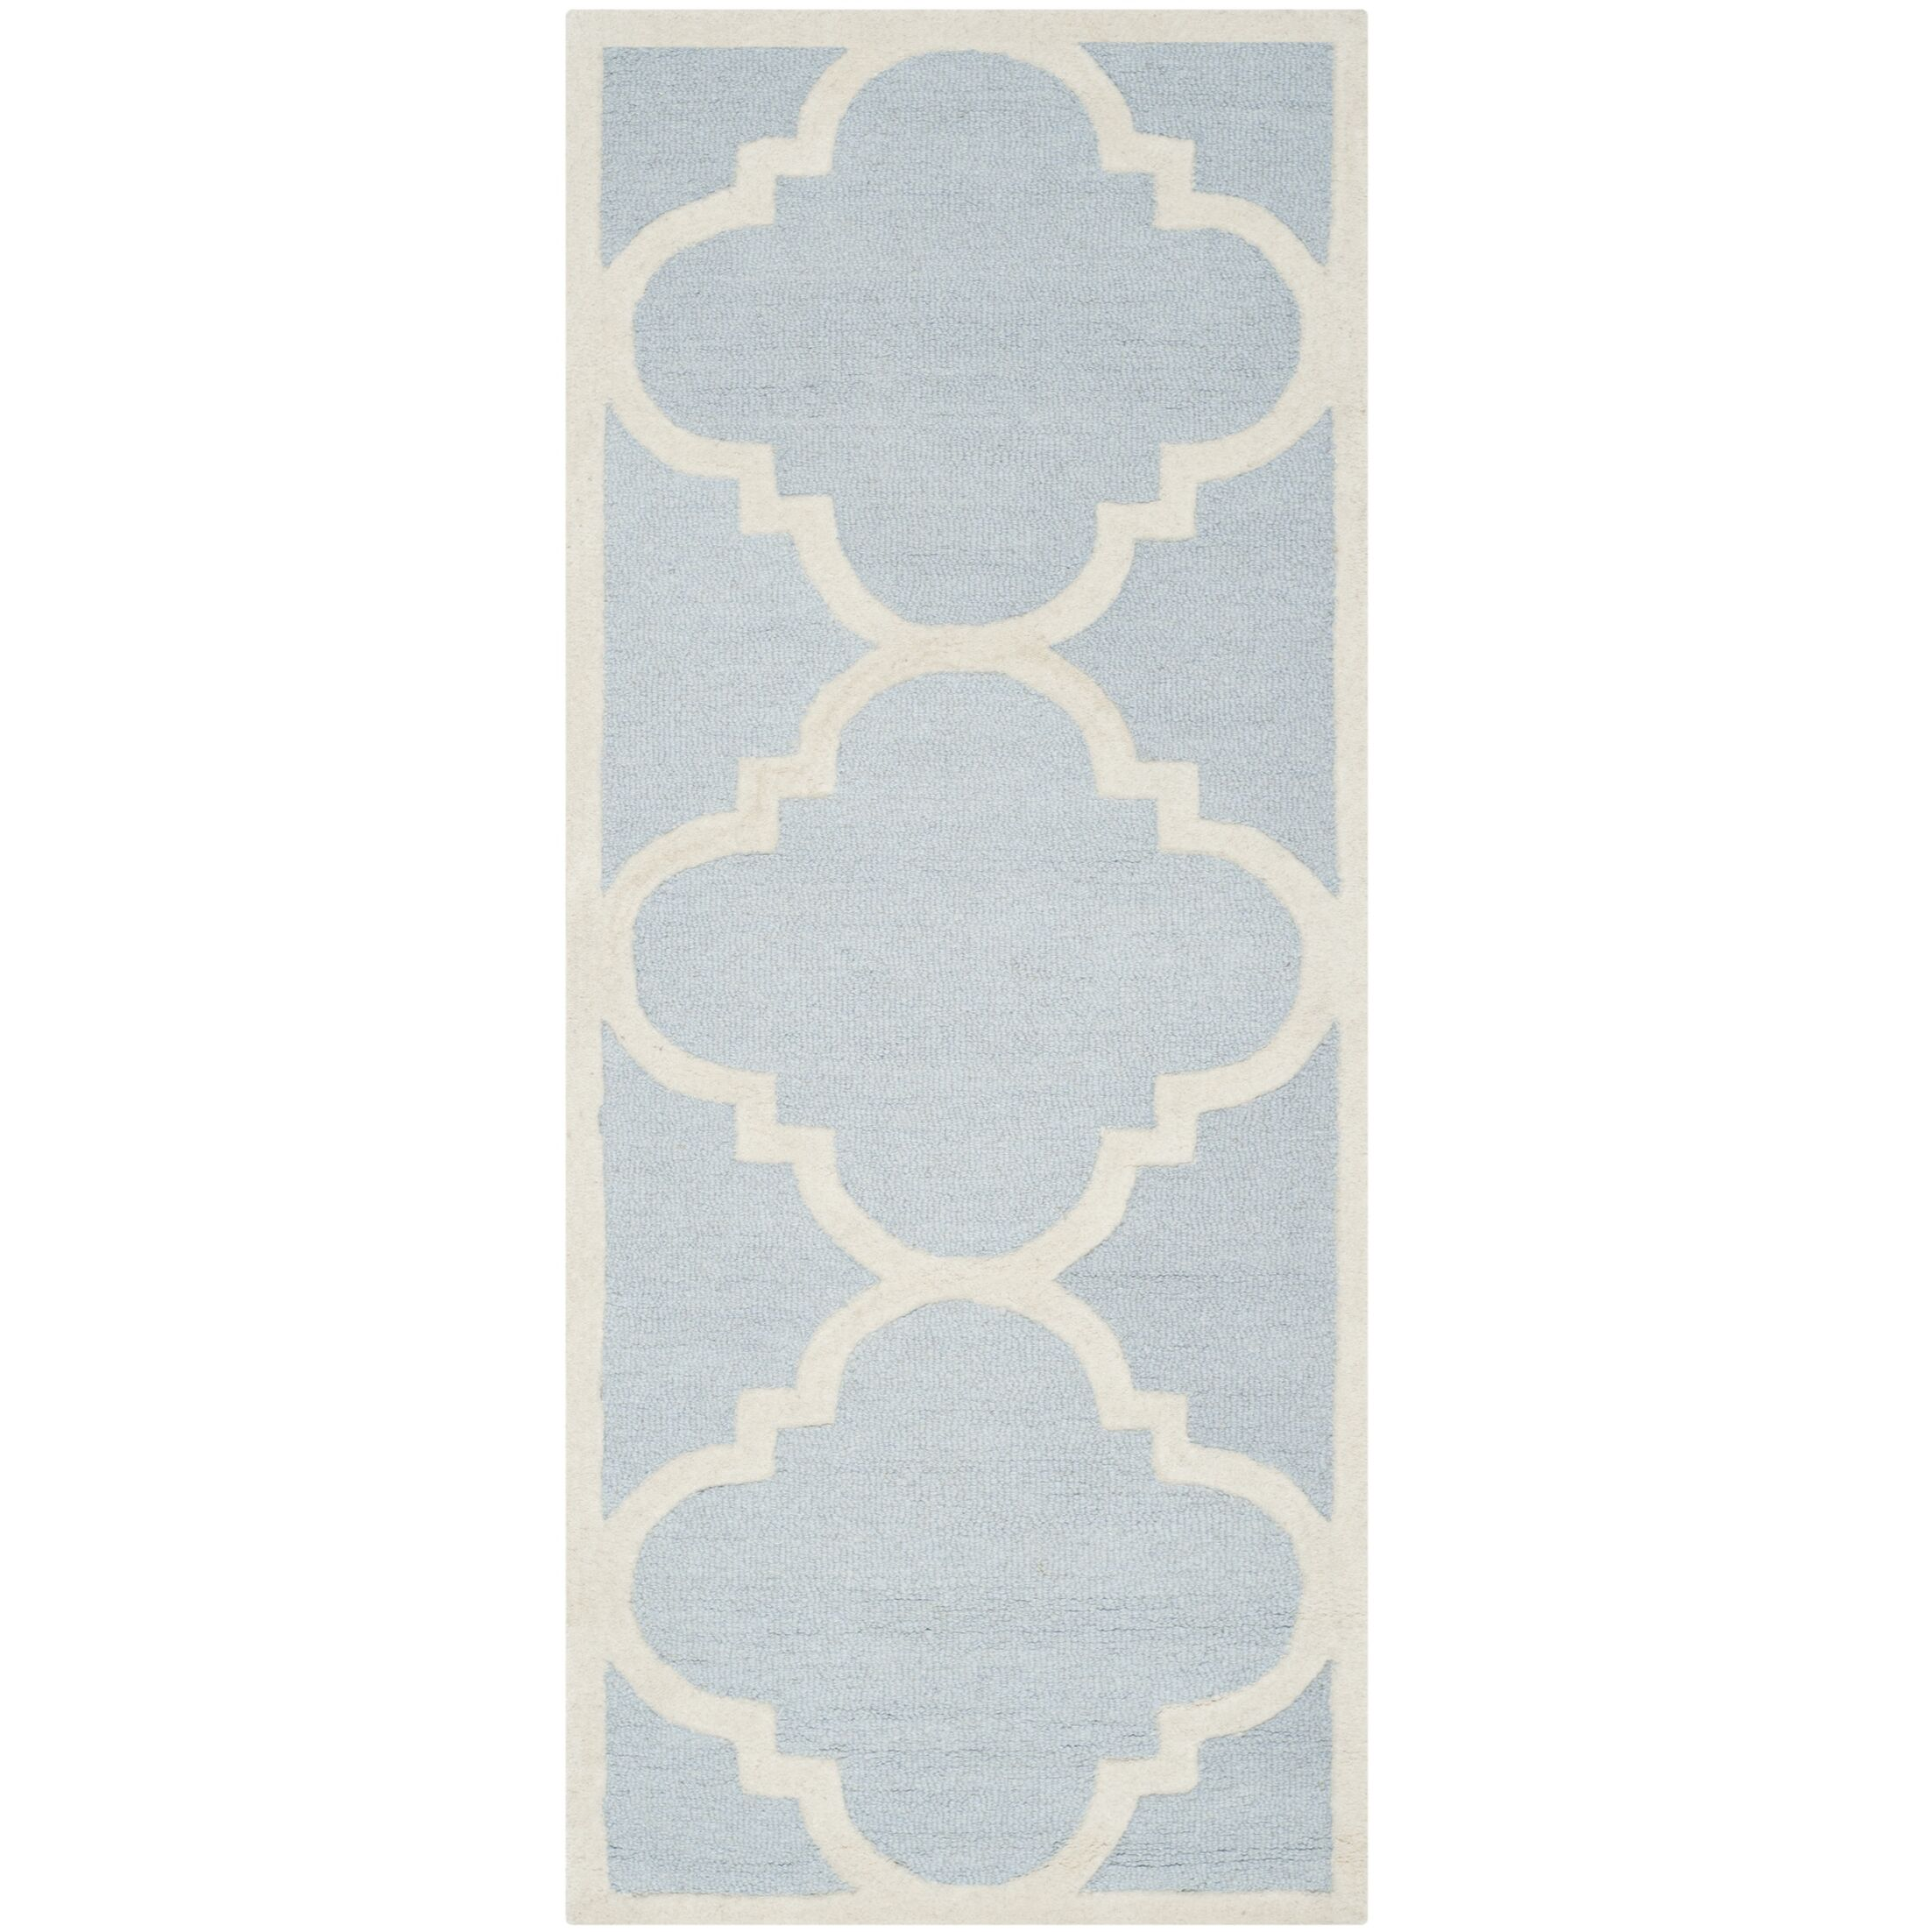 Bring classic style to your bedroom, living room, or home office with this richly-dimensional Charlenne Traditional Light Blue/Ivory Area Rug. Artfully tufted, these plush wool area rugs are crafted with plush and loop textures to highlight timeless m...